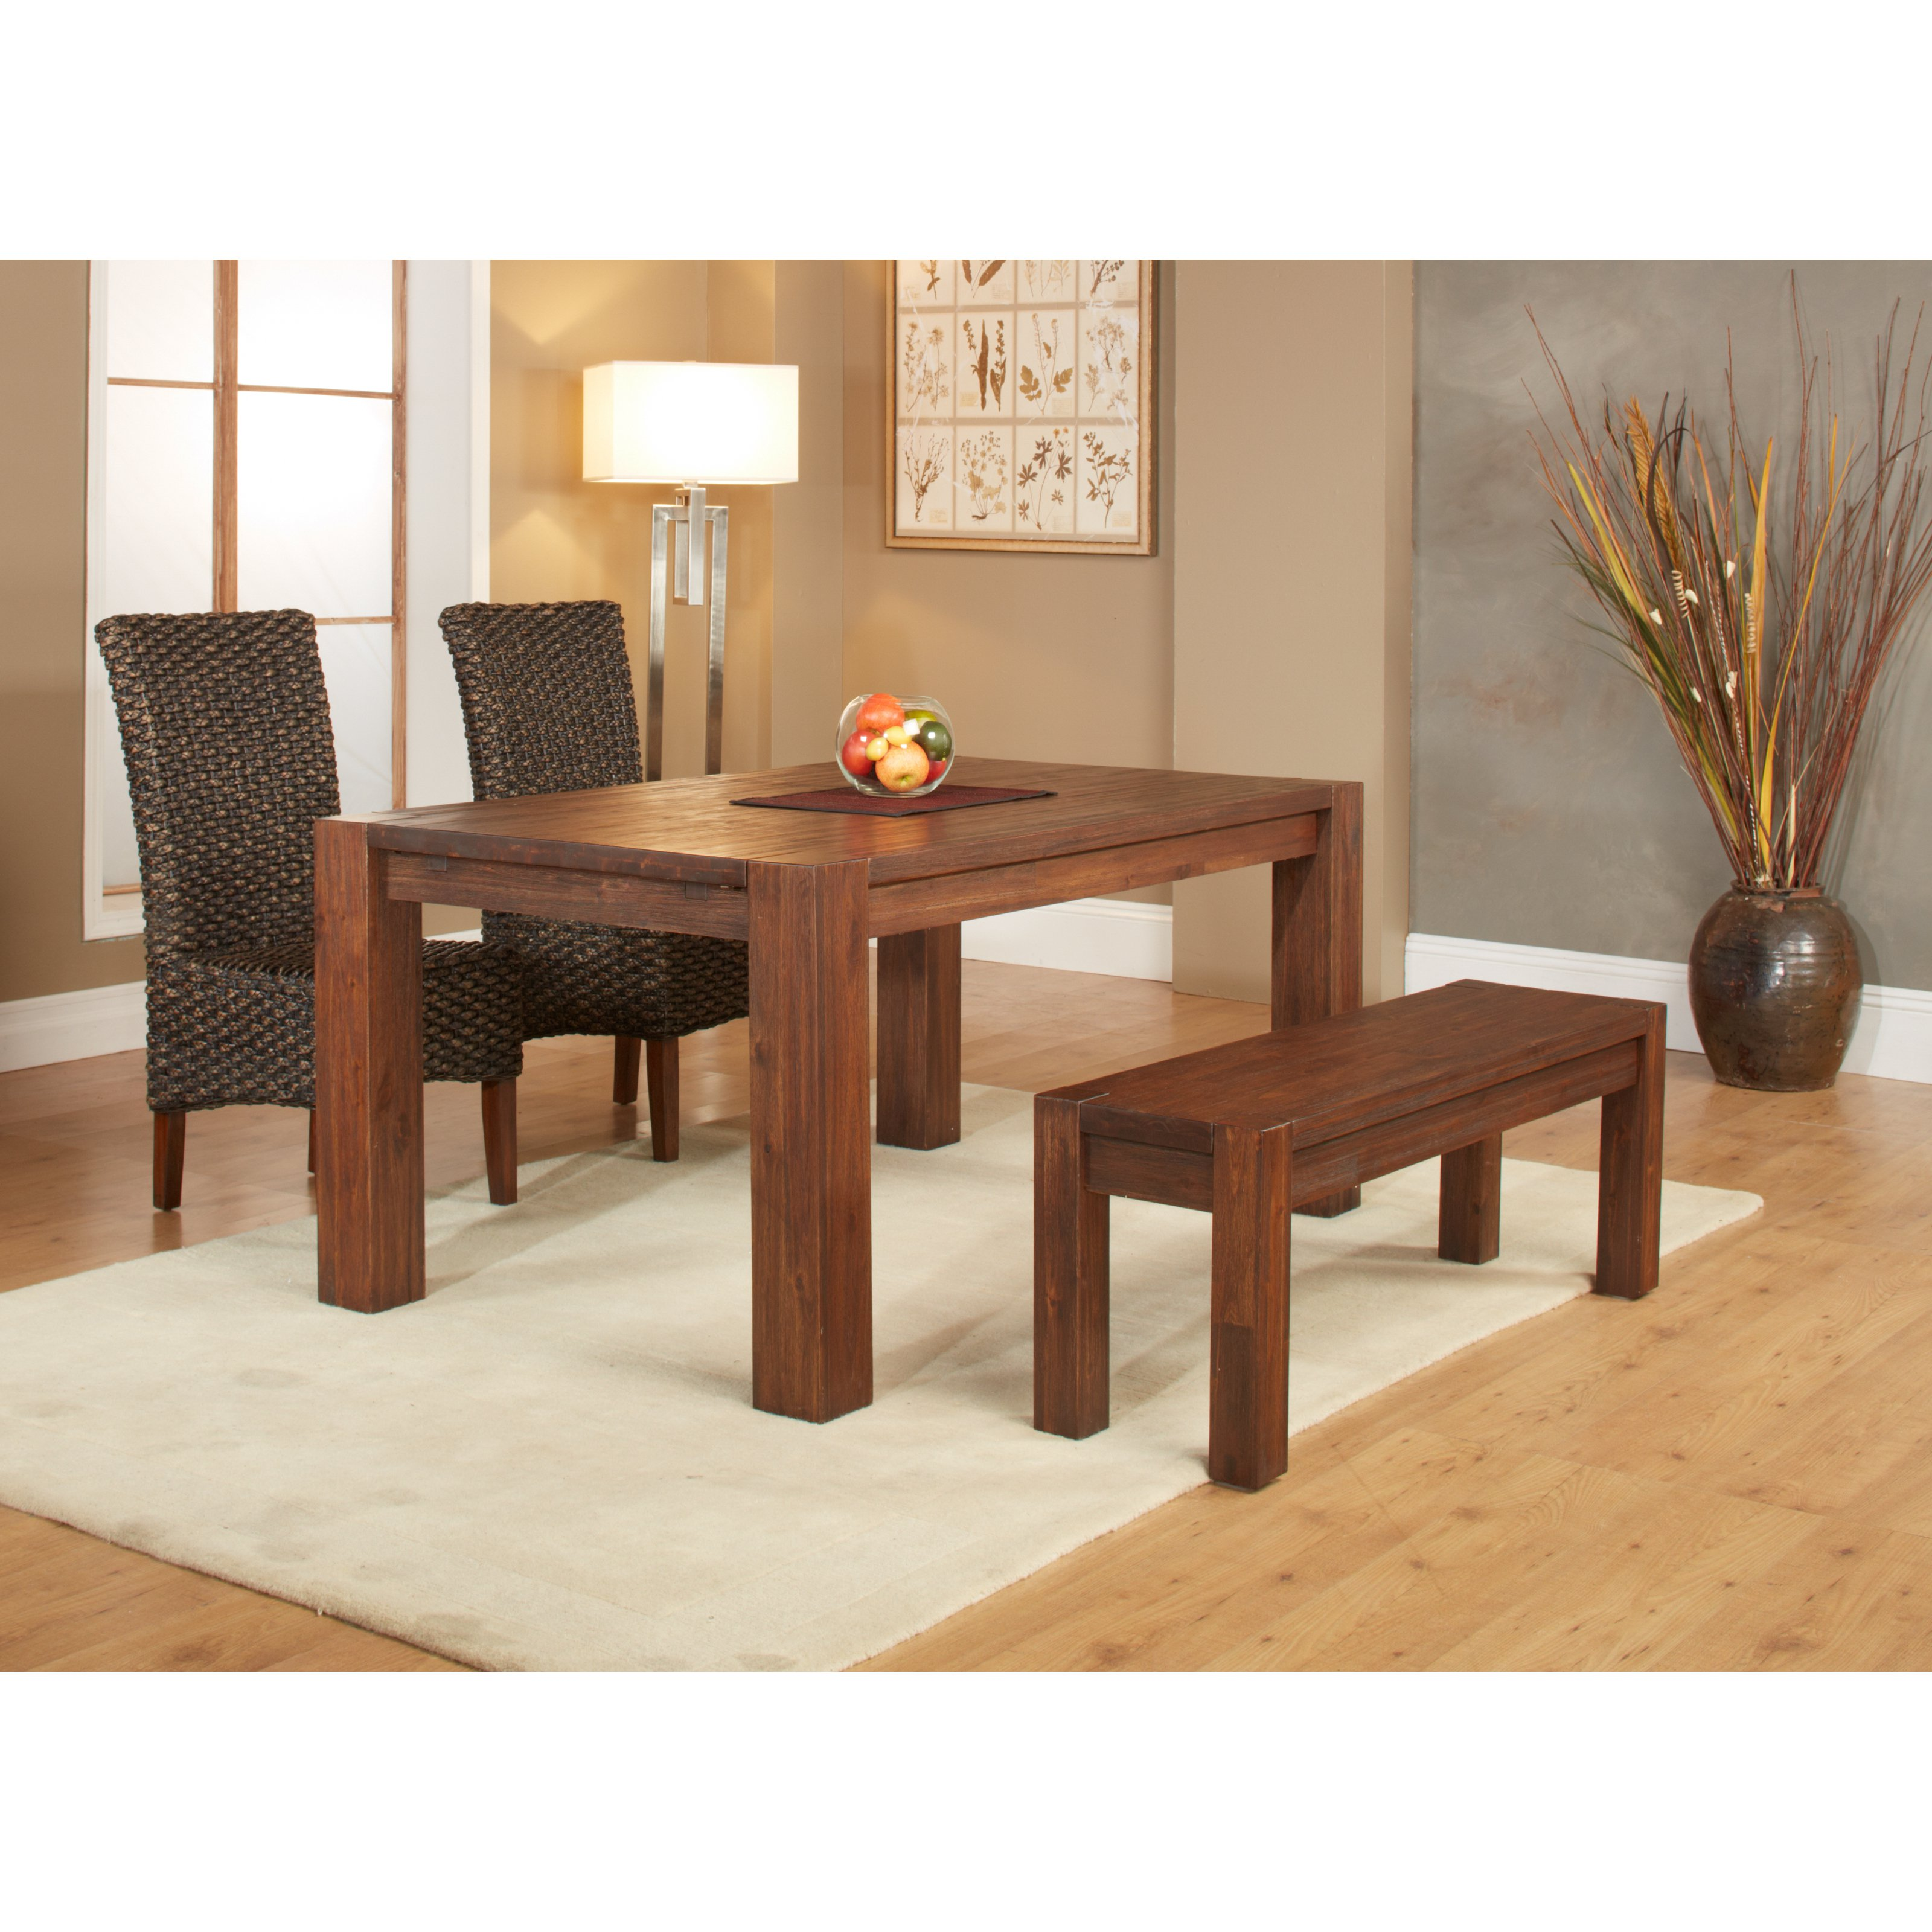 Modus 4 Piece Meadow Dining Table Set with Bench by Modus Furniture International